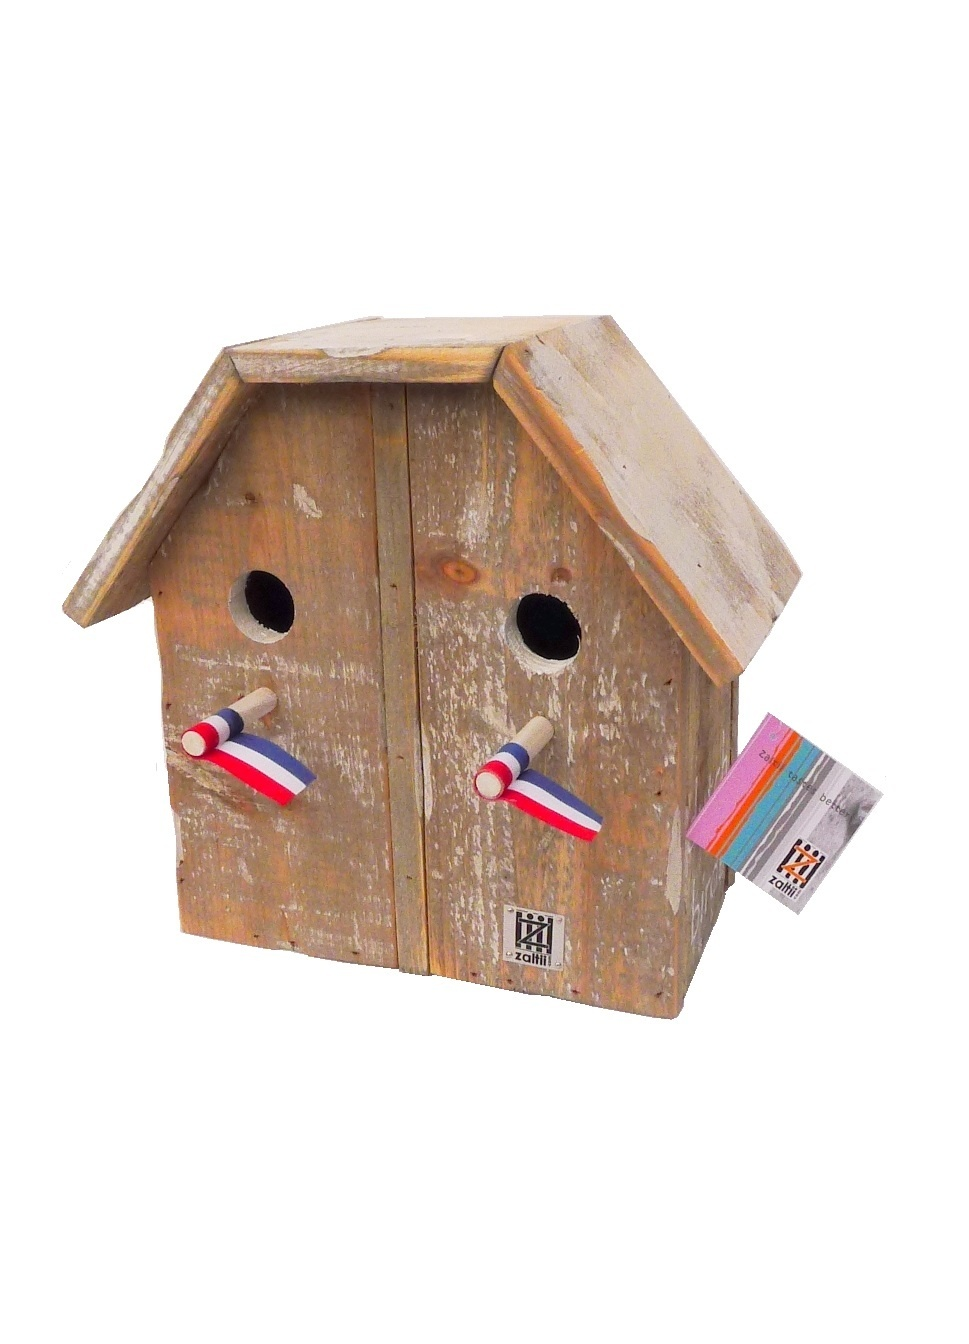 birdhouse old dutch 2 under 1 roof-10